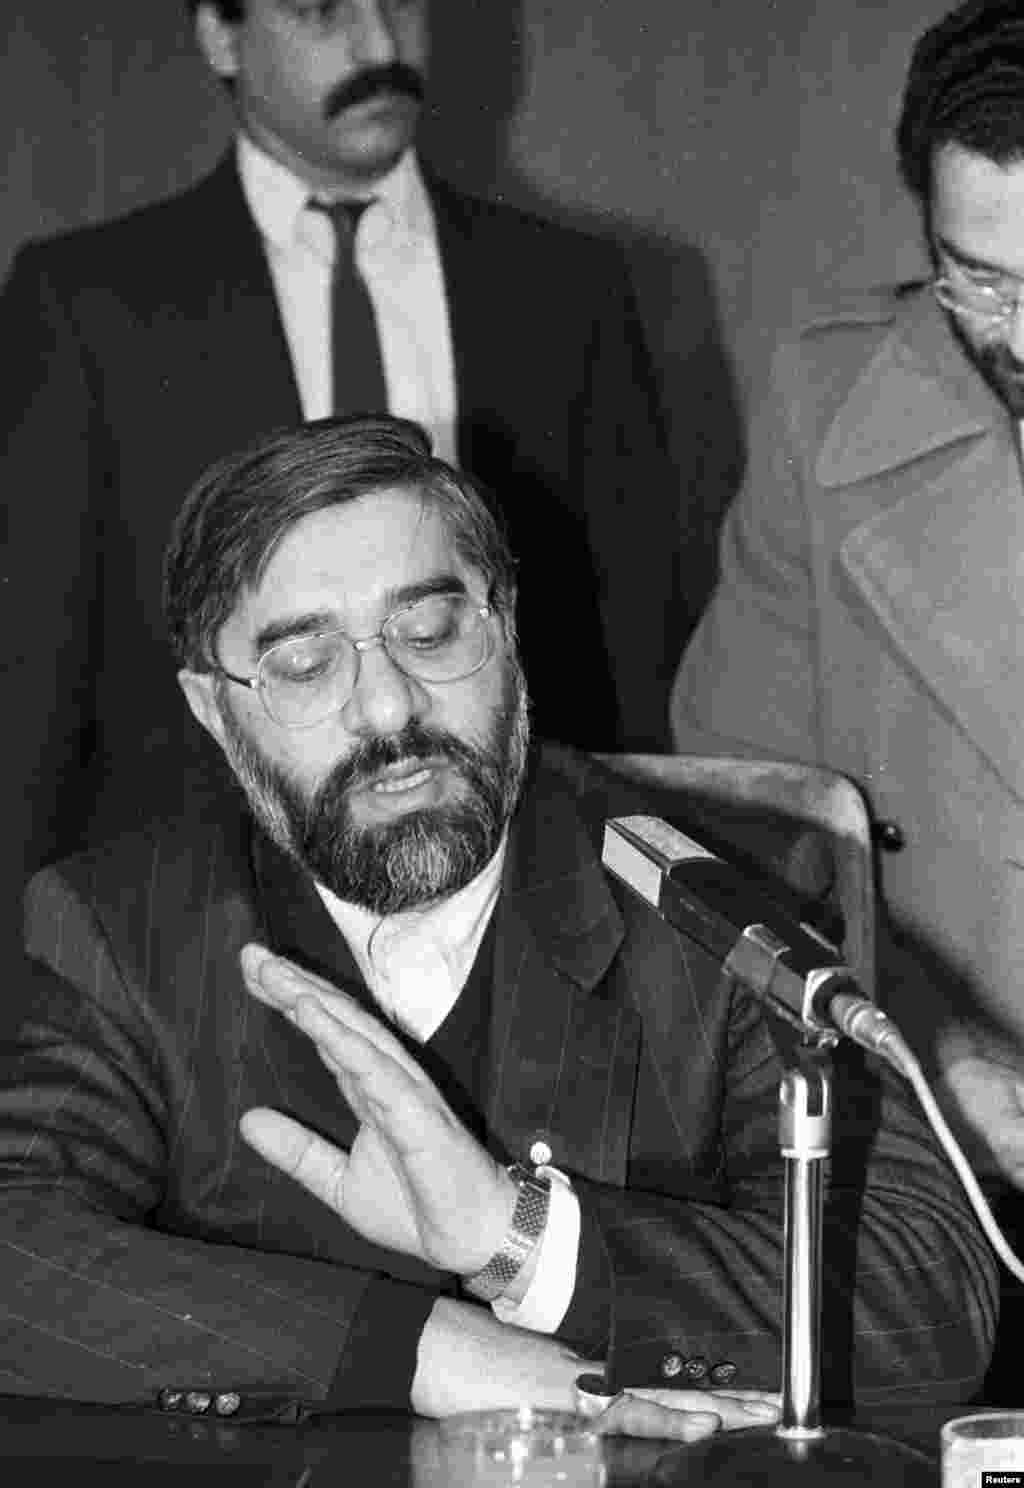 Iranian Prime Minister Mir-Hossein Musavi answers questions about the Rushdie fatwa during a press conference at Ankara airport in February 1989, shortly after Khomeini declared the death sentence. (REUTERS/Fatih Saribas)